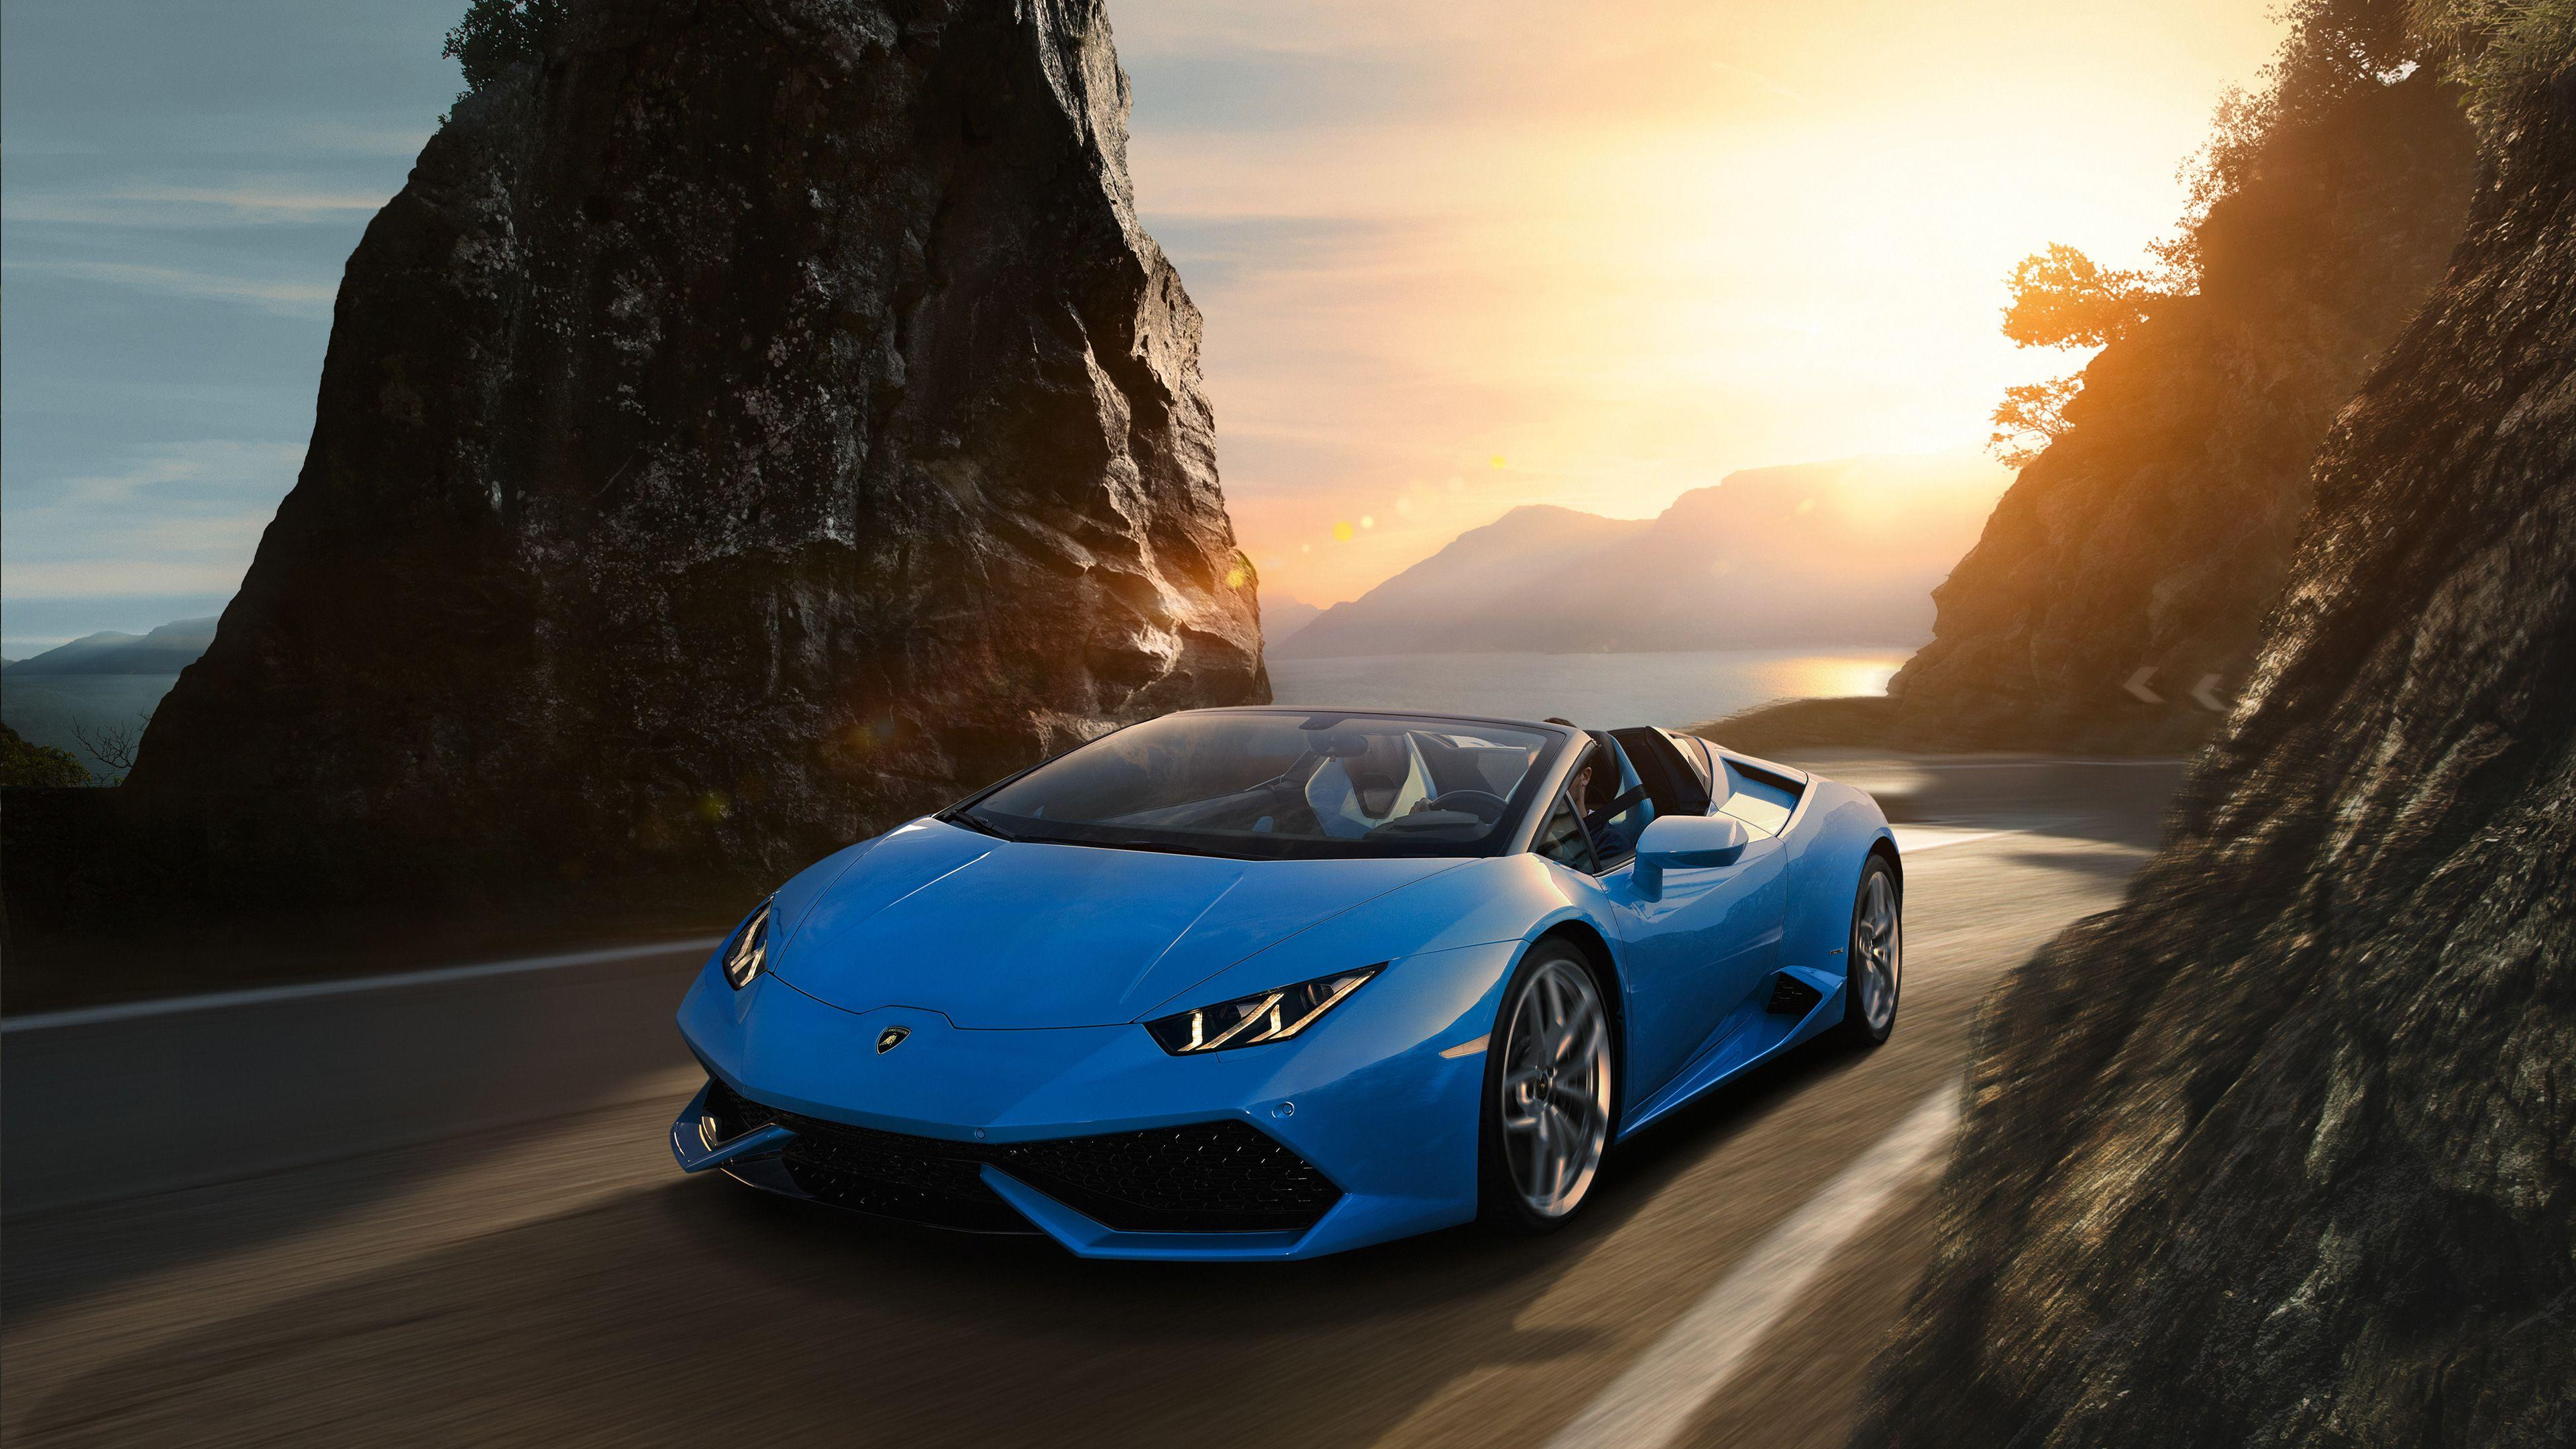 Sky Blue Lamborghini Wallpapers Wallpaper Cave